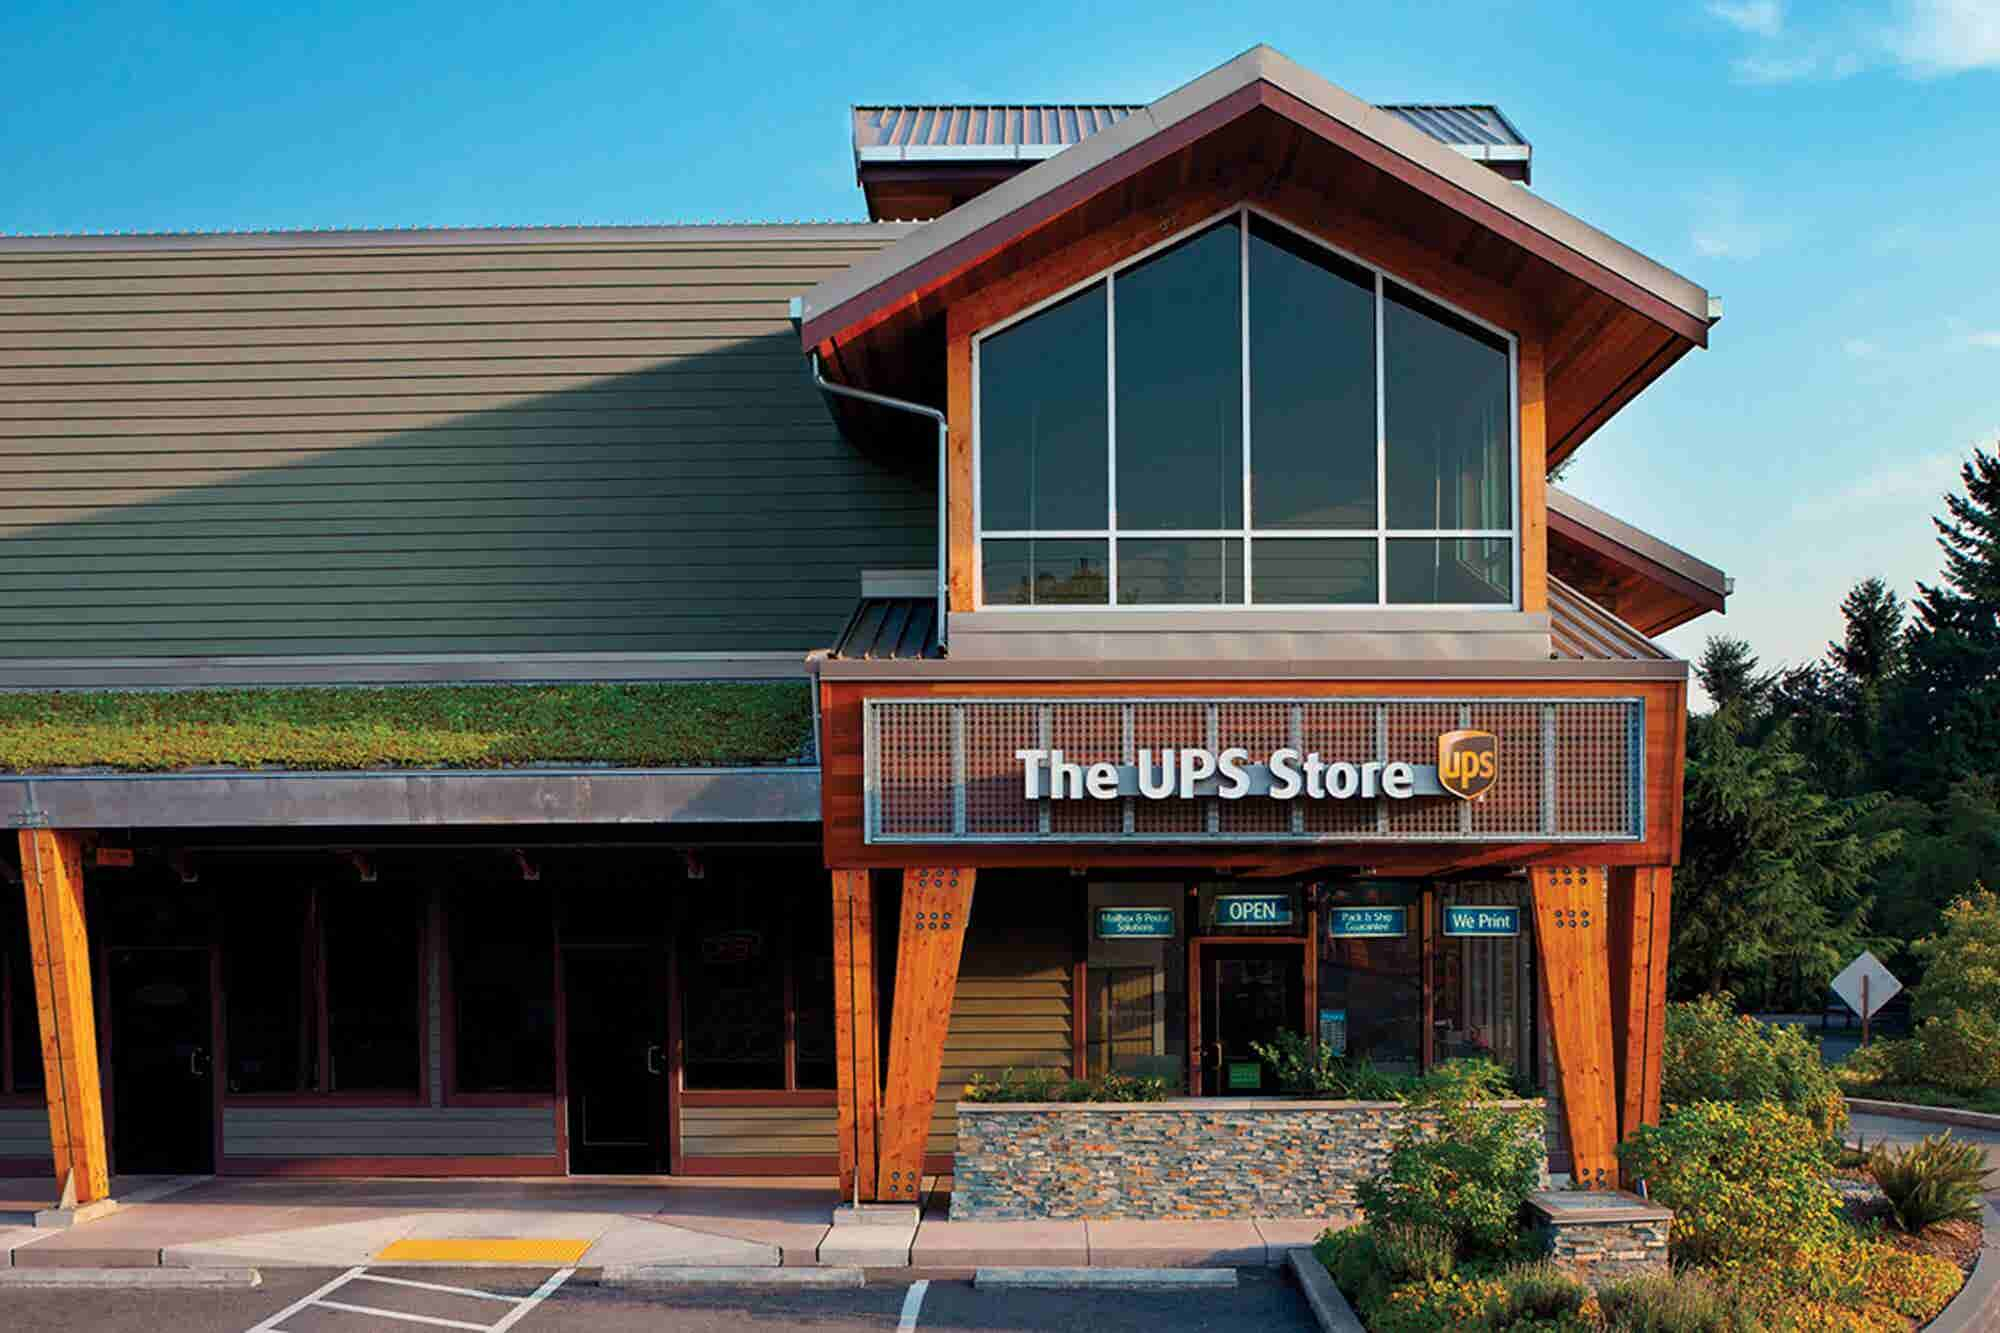 #5 on the Franchise 500: The UPS Store Gets a Consumer-Friendly Makeov...